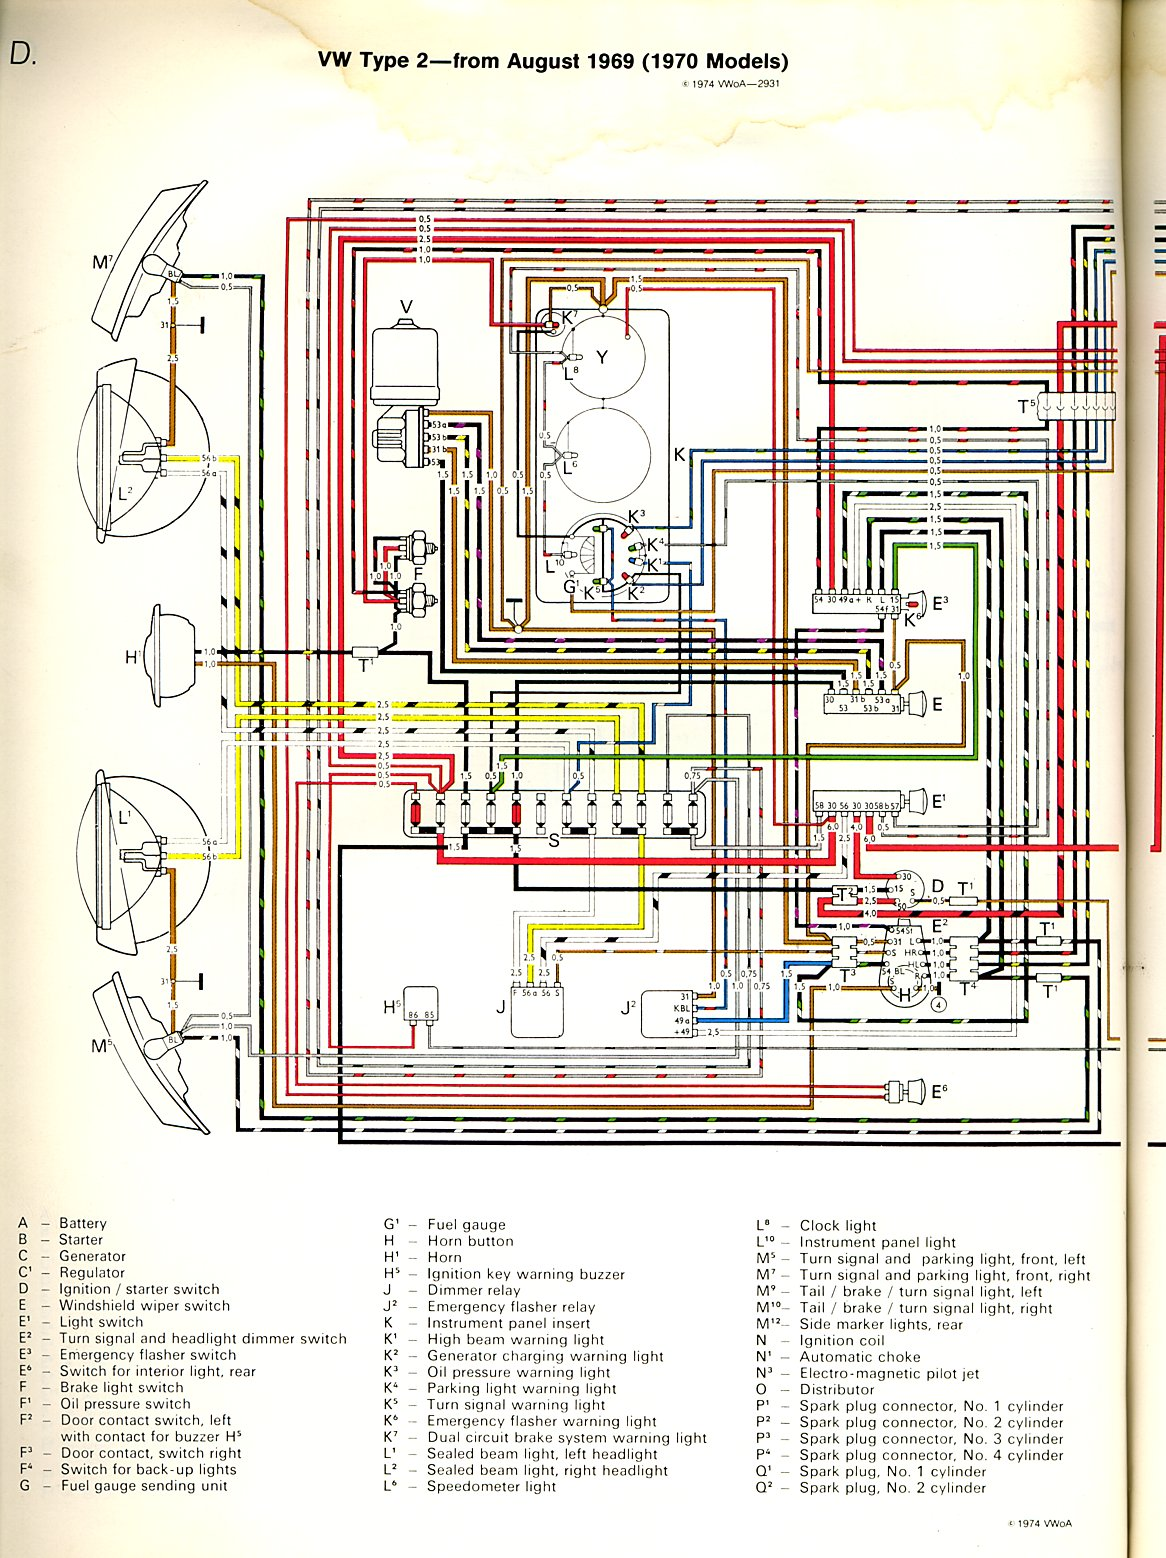 70 vw wiring diagram free picture schematic 70 vw wiring diagram thesamba.com :: type 2 wiring diagrams